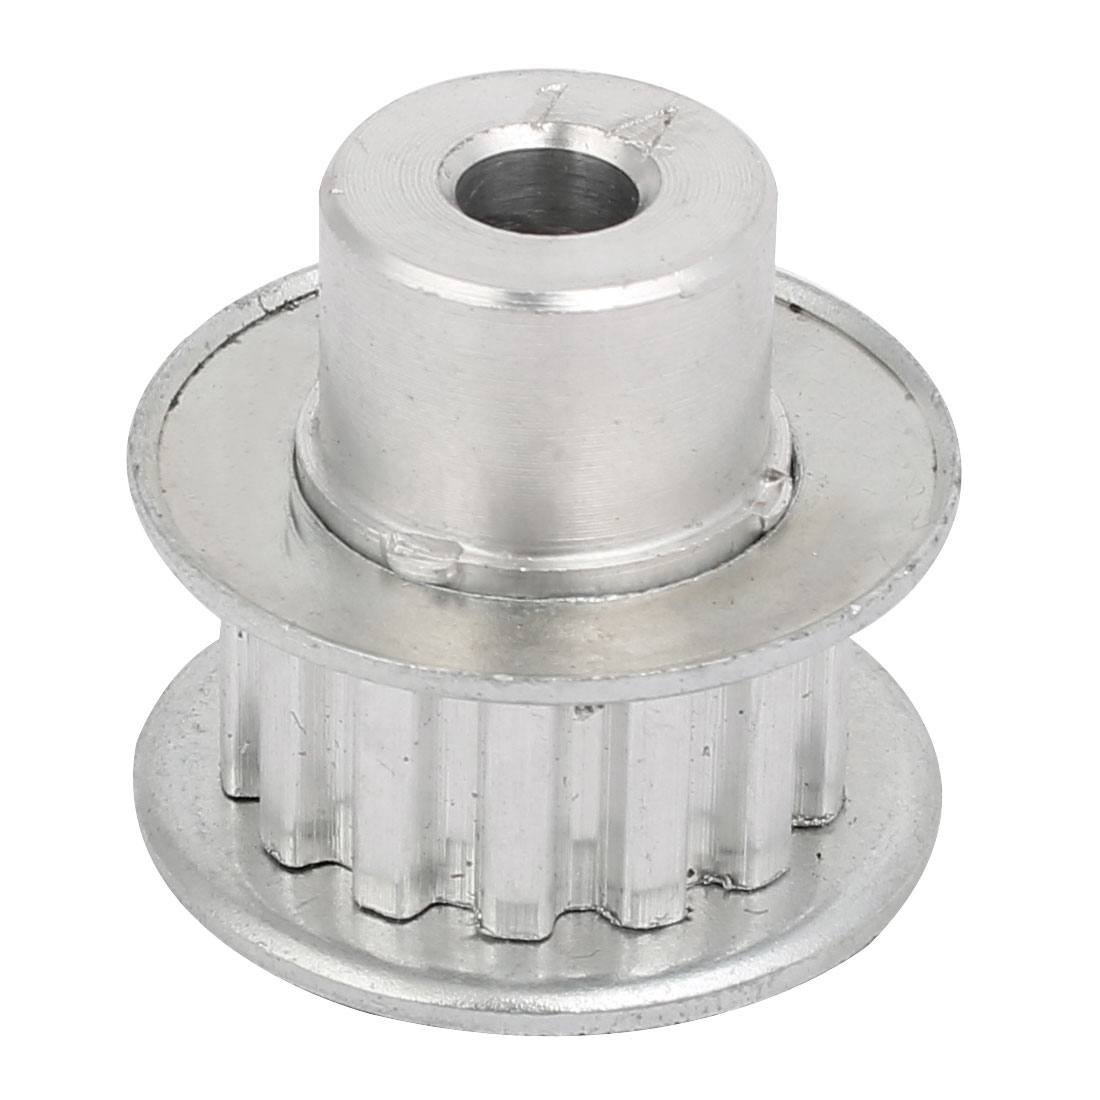 14 Teeth 6mm Bore Synchronous Wheel Timing Pulley Silver Tone